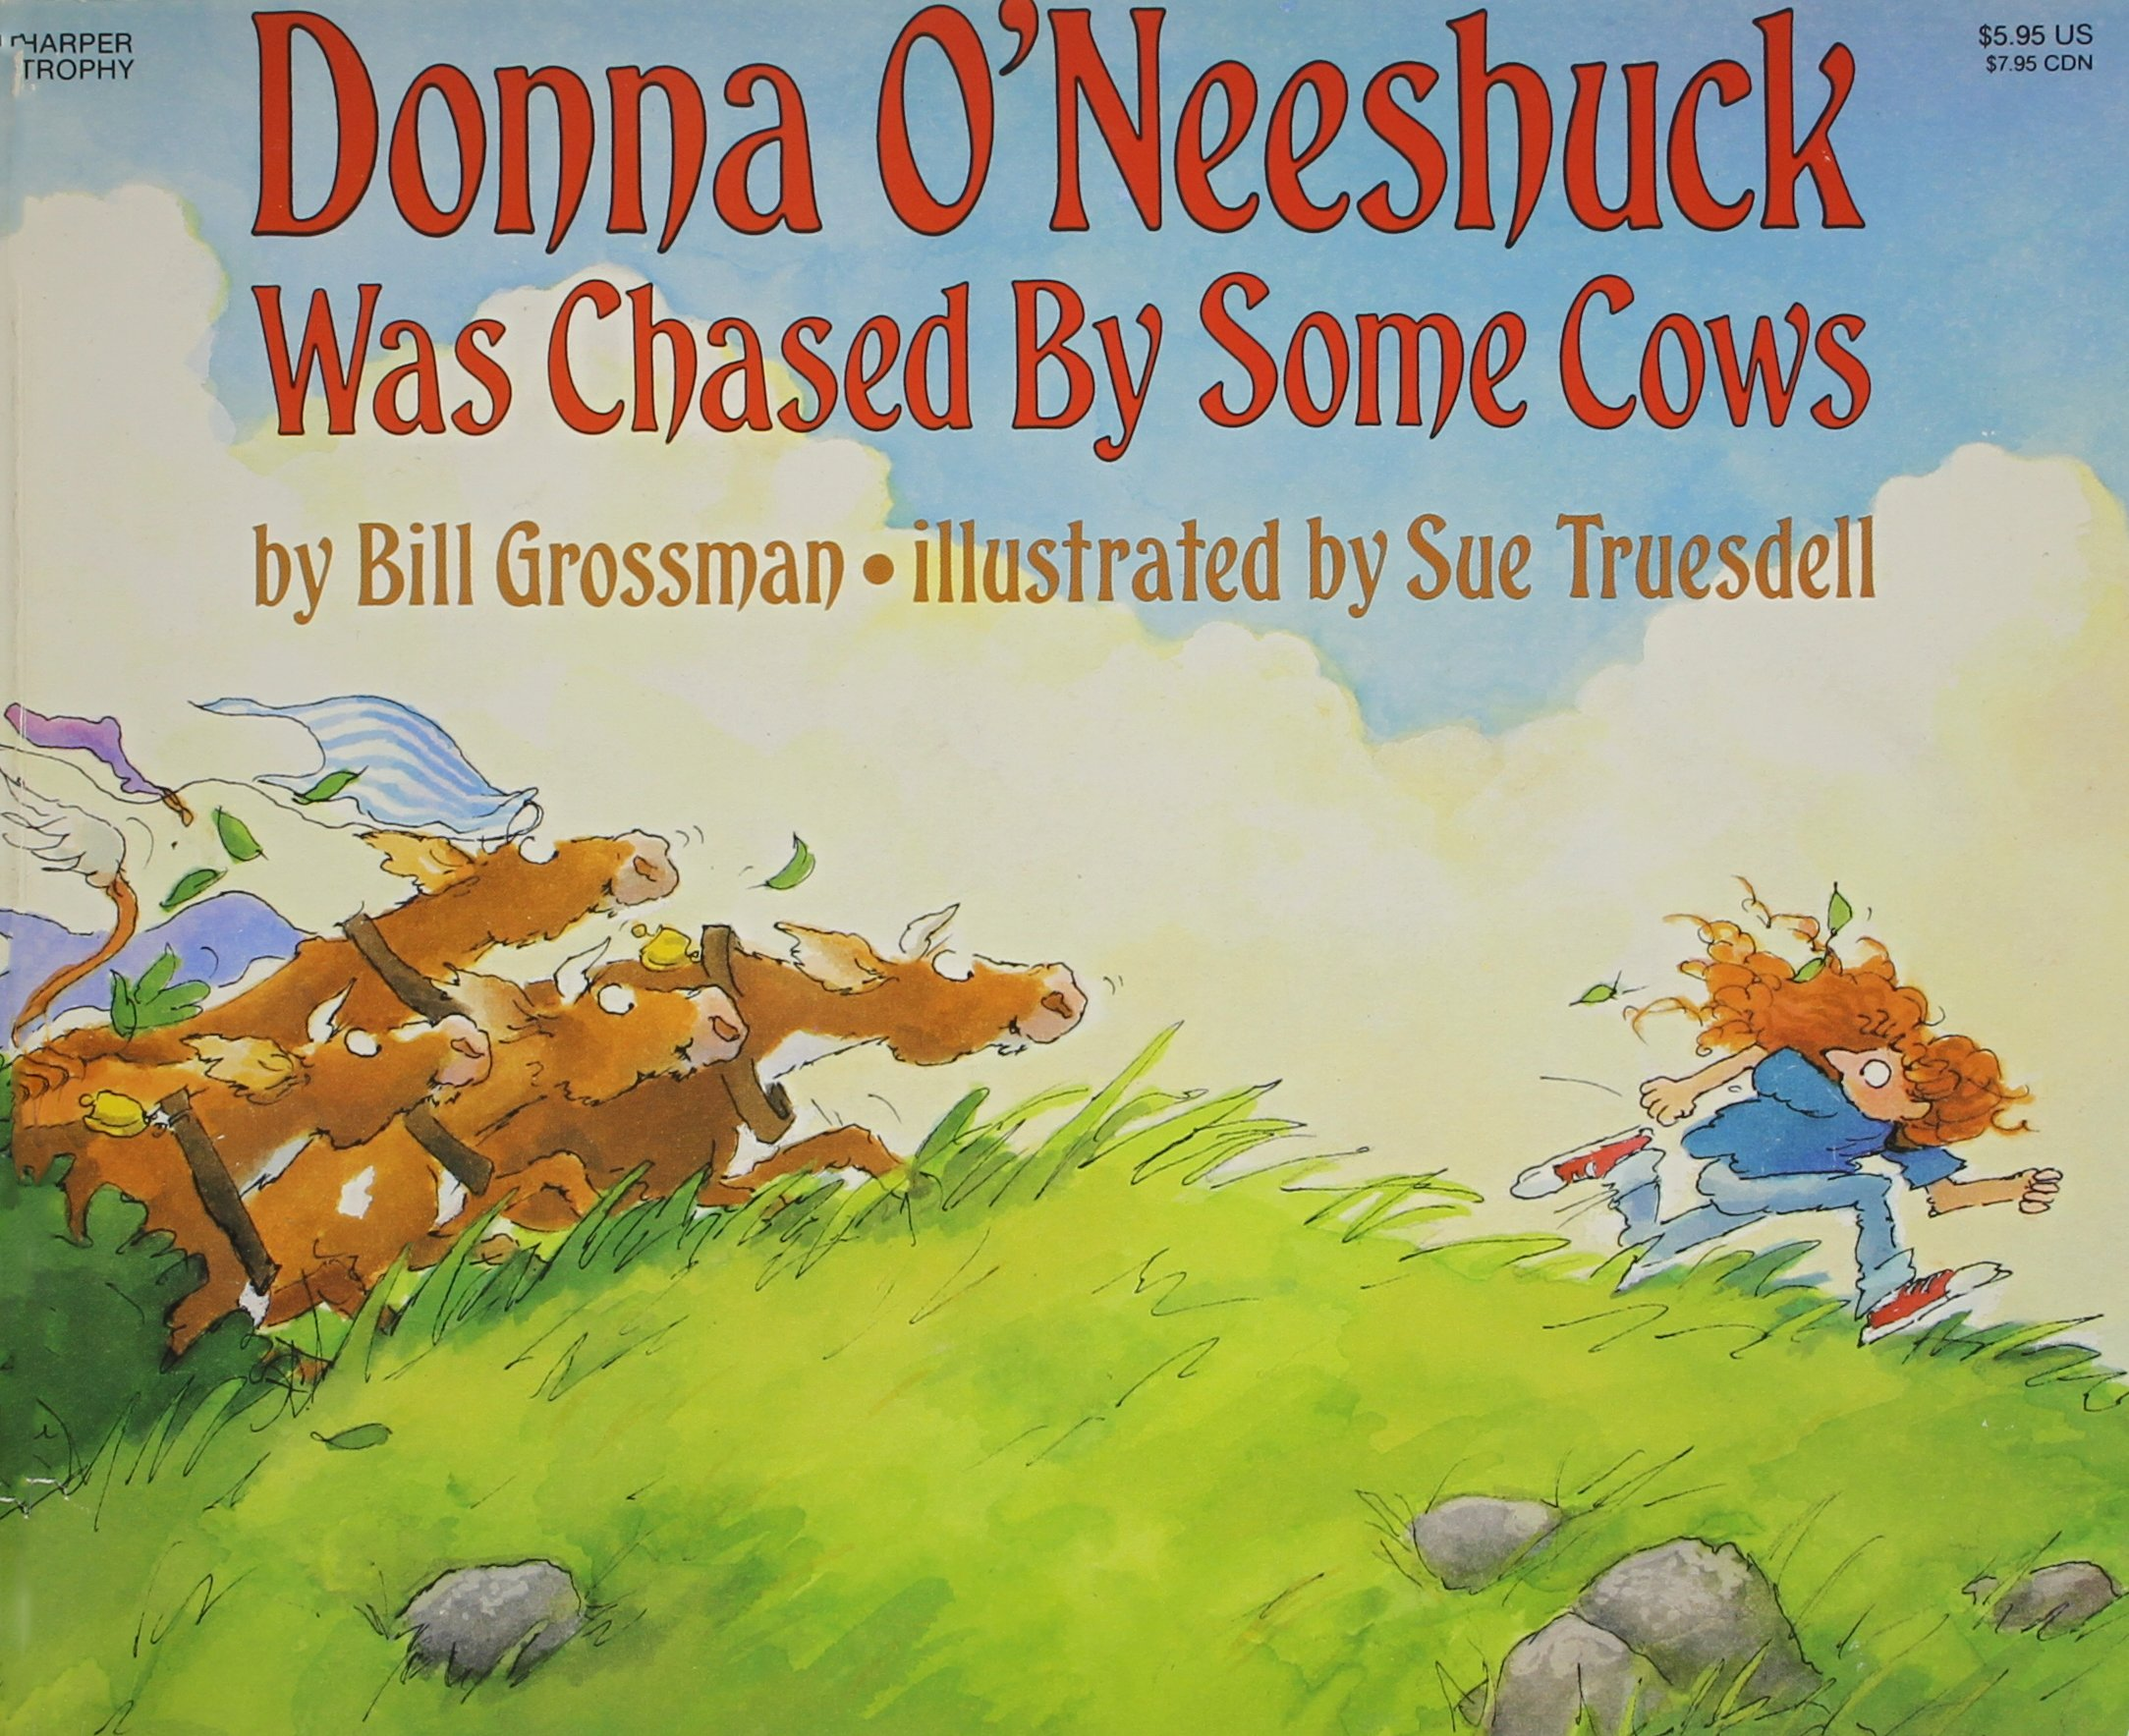 Donna O'Neeshuck Was Chased by Some Cows